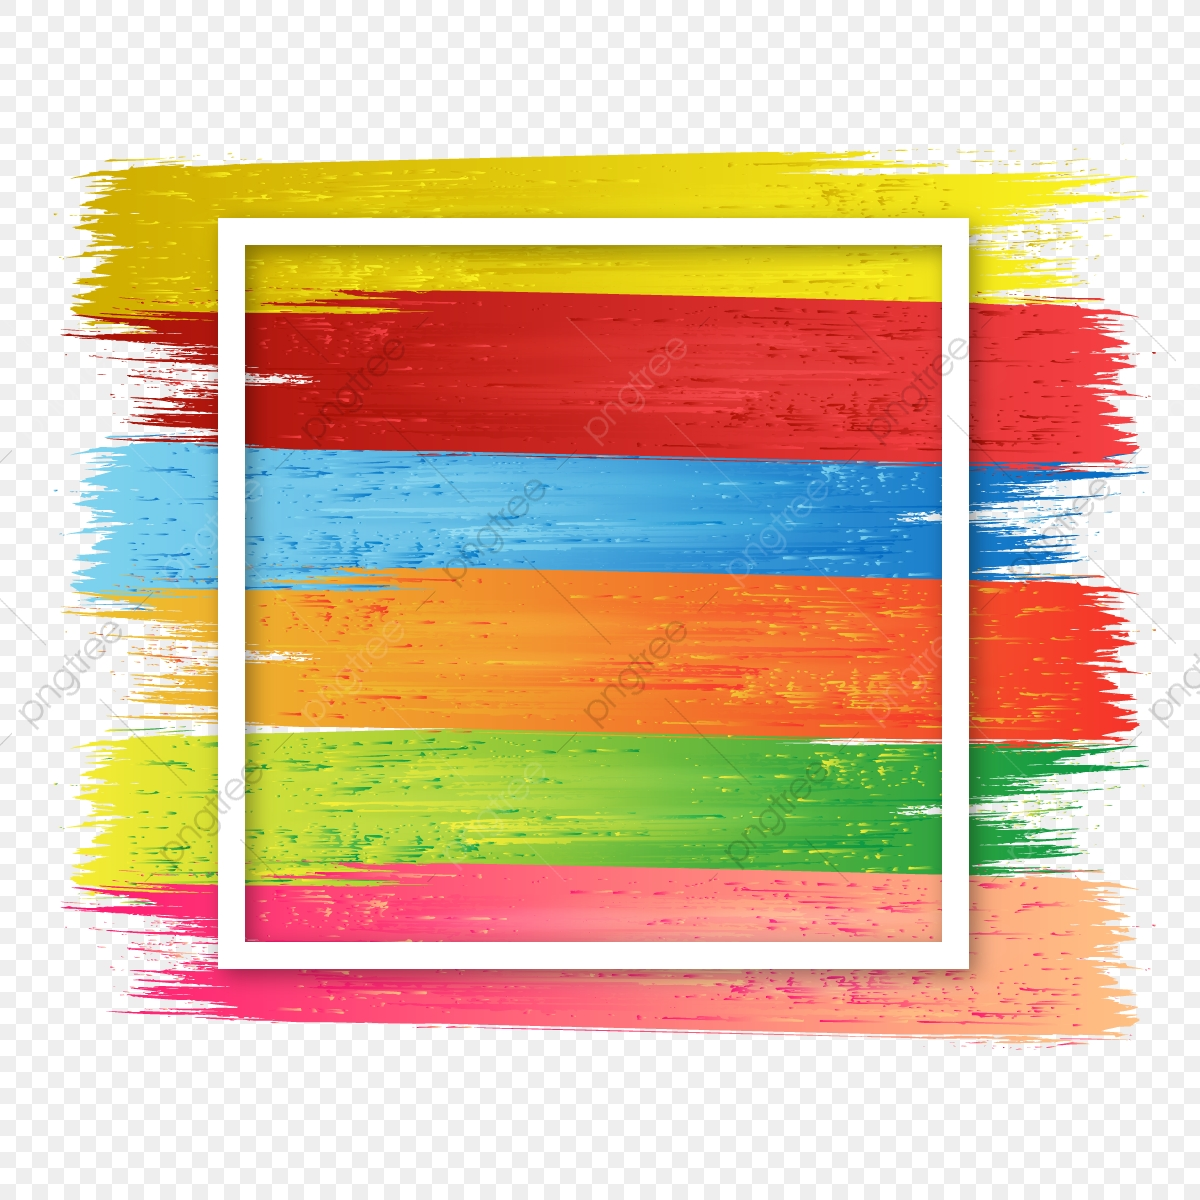 abstract stroke brush strips over the square frame brush effect brush stroke strip png and vector with transparent background for free download https pngtree com freepng abstract stroke brush strips over the square frame brush effect 3741589 html